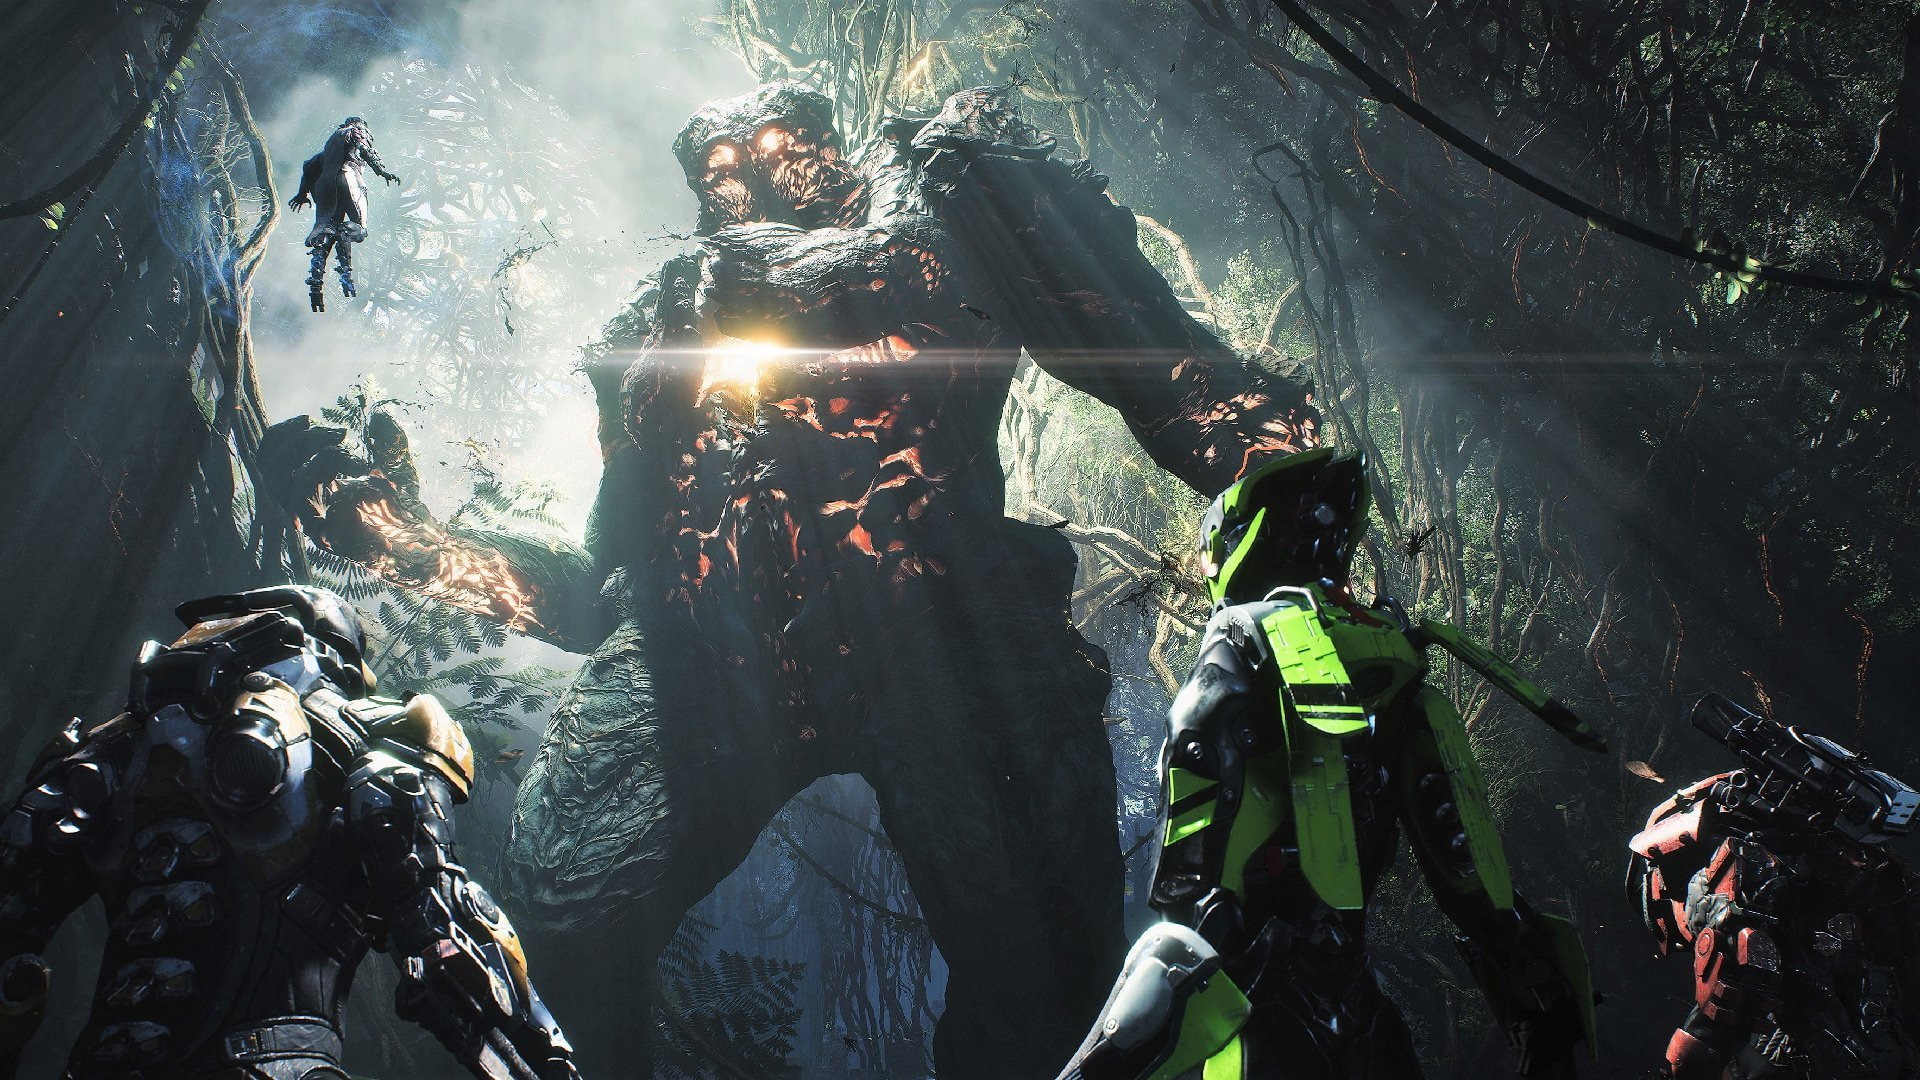 NPD: Anthem was the best-selling game in February